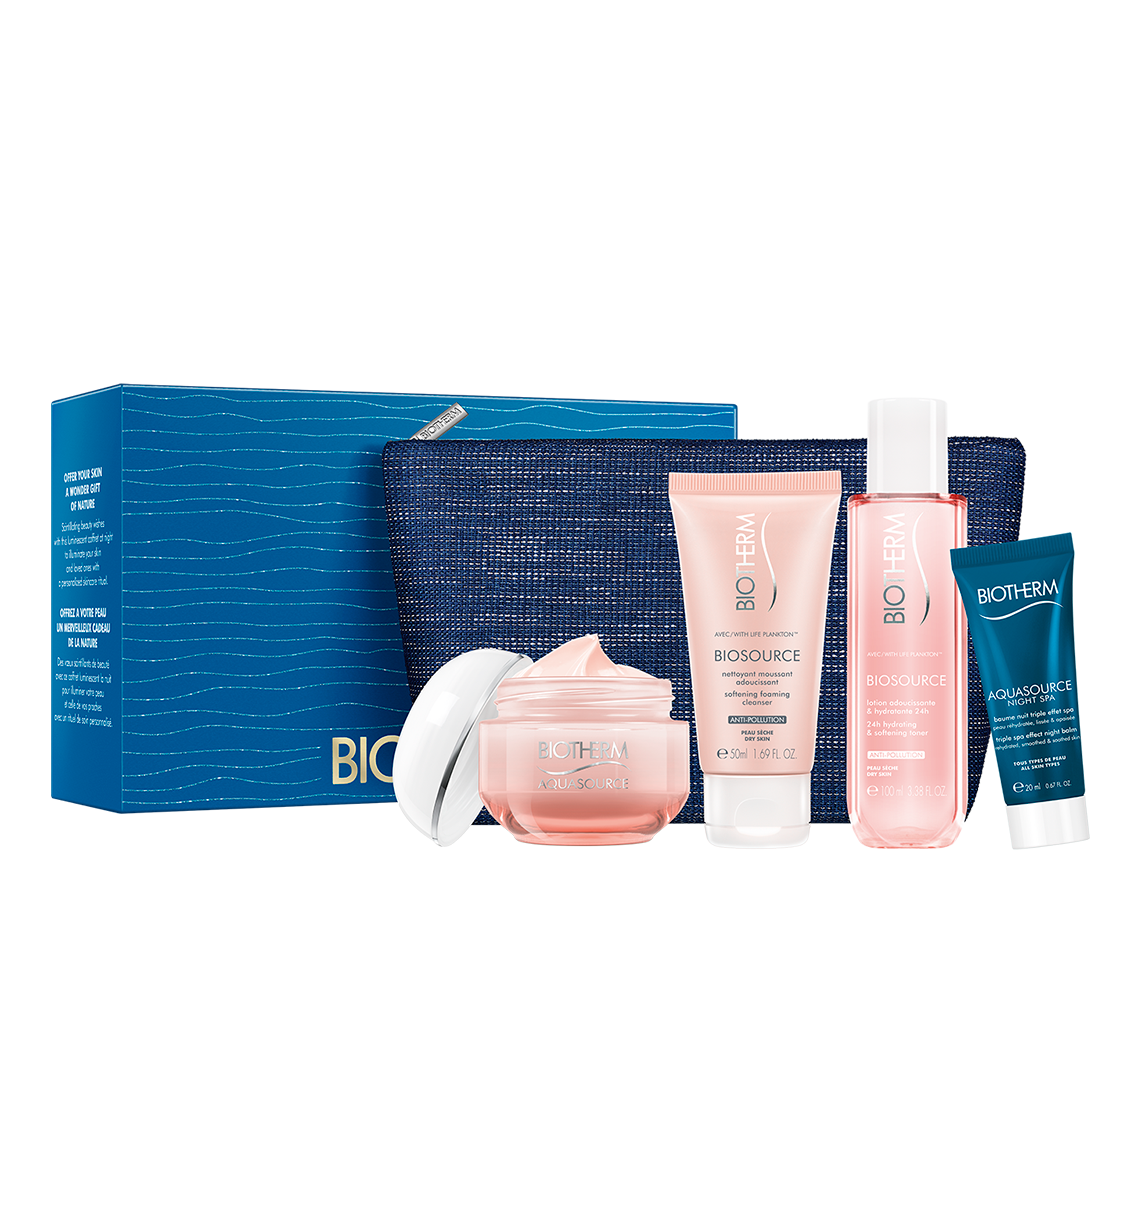 biotherm gift set